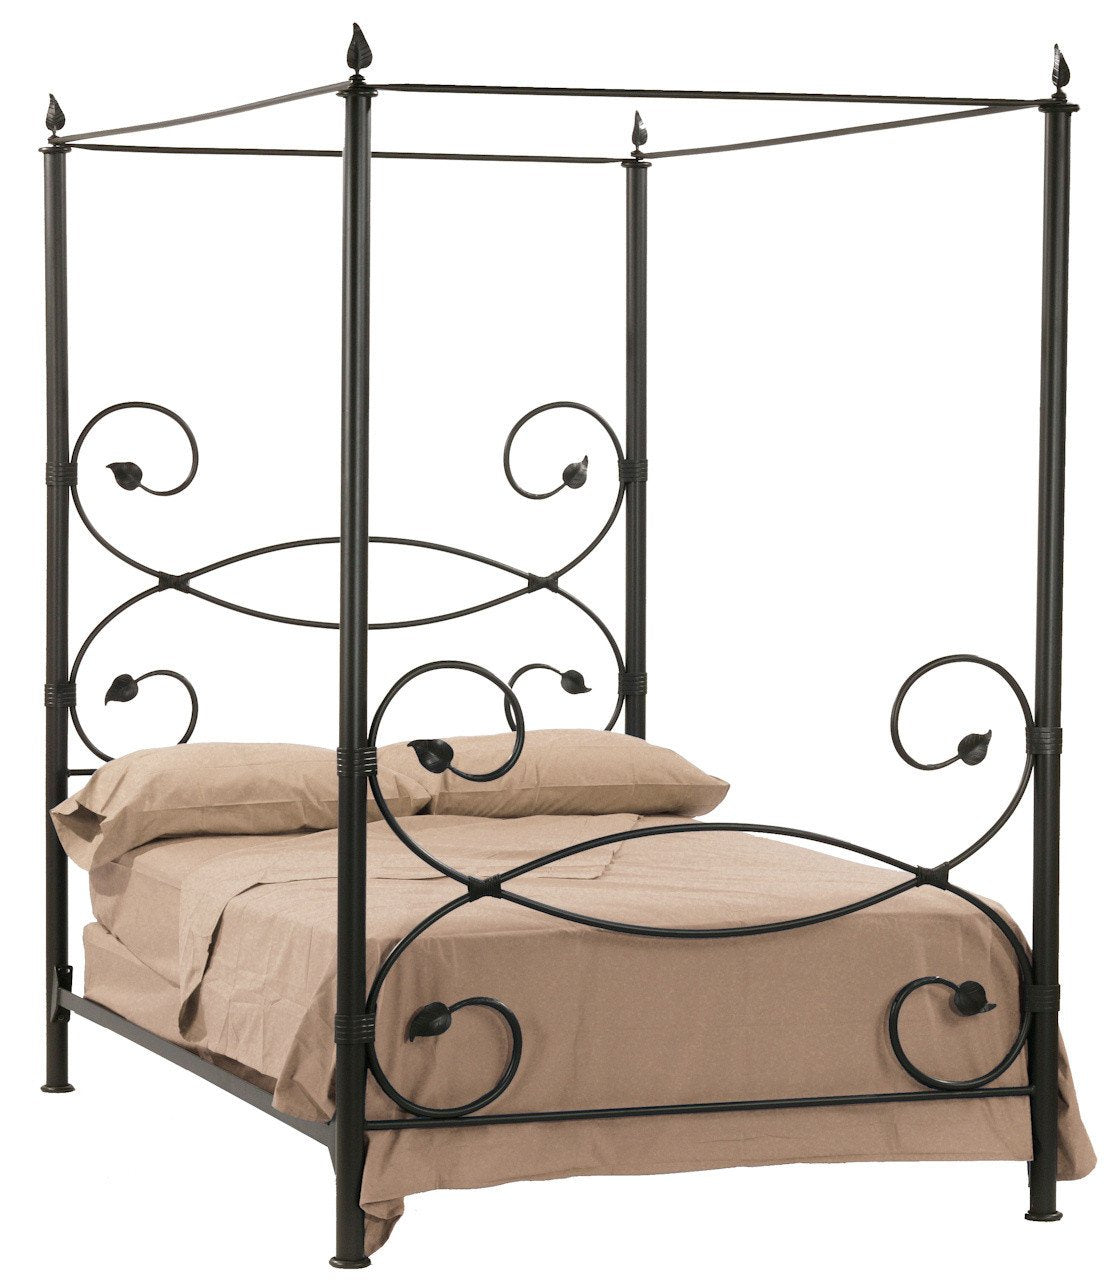 Stone County Canopy Twin Bed Leaf Bed Image